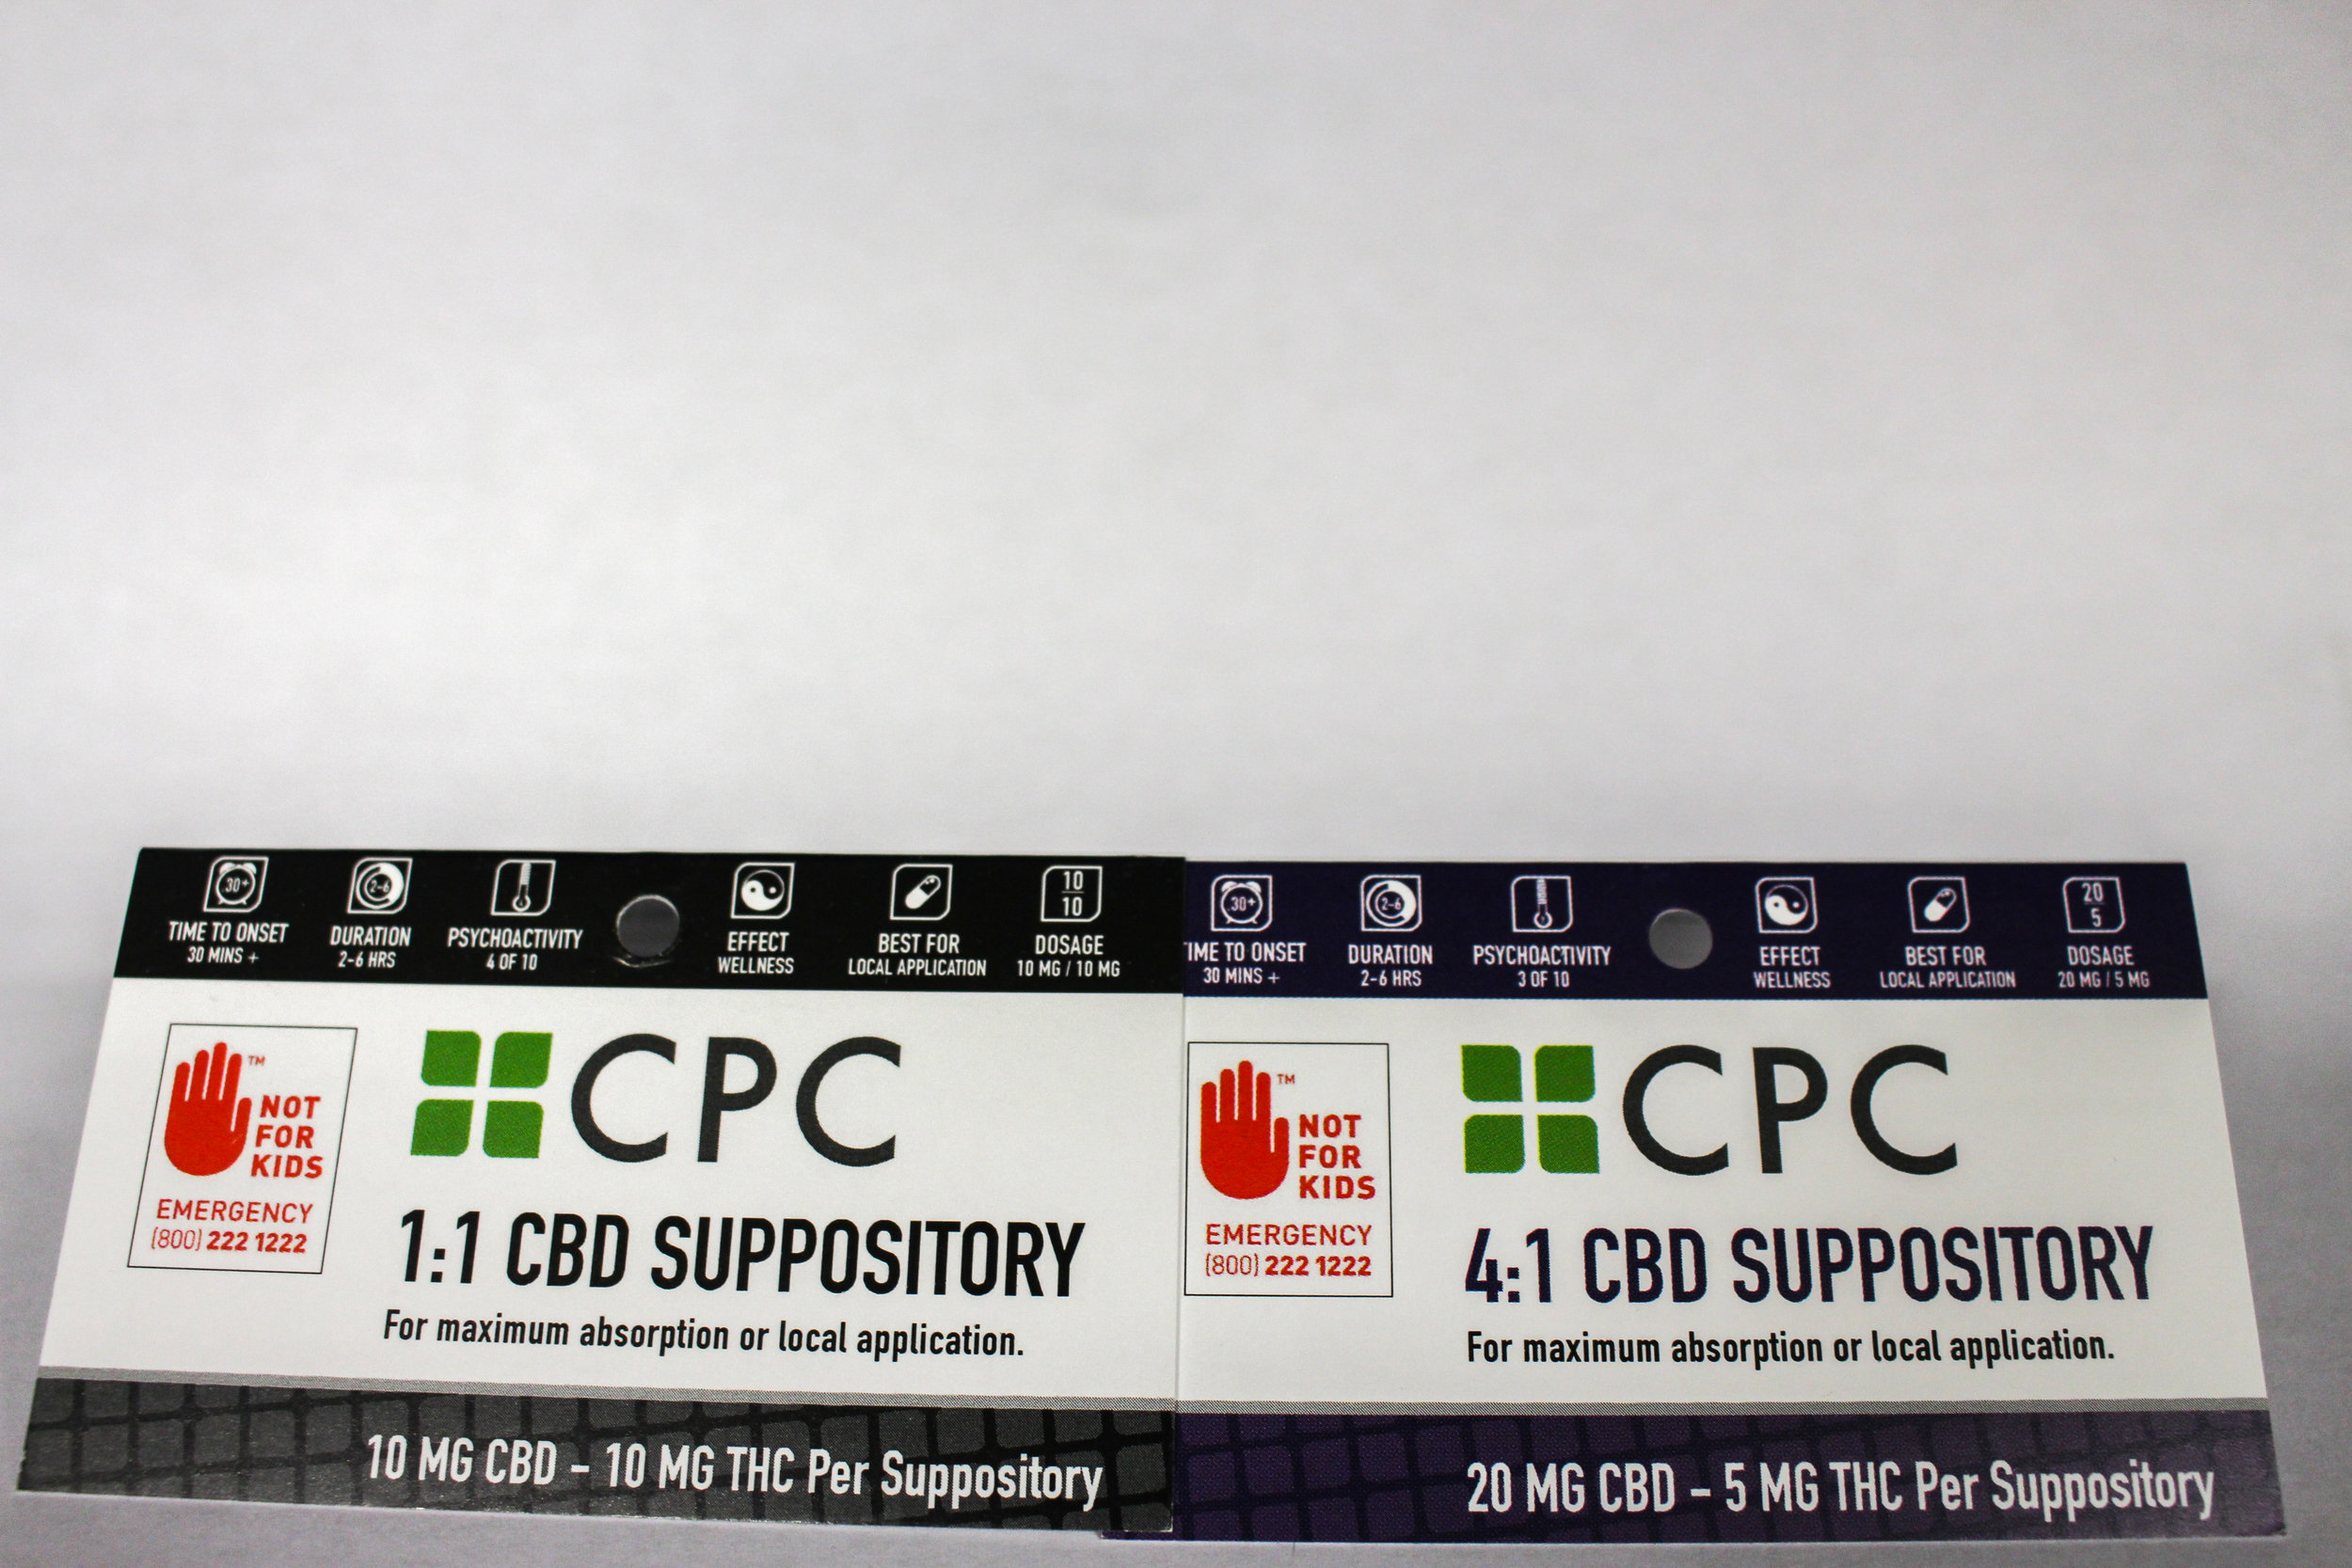 CBD and THC Cannabis suppository packaging